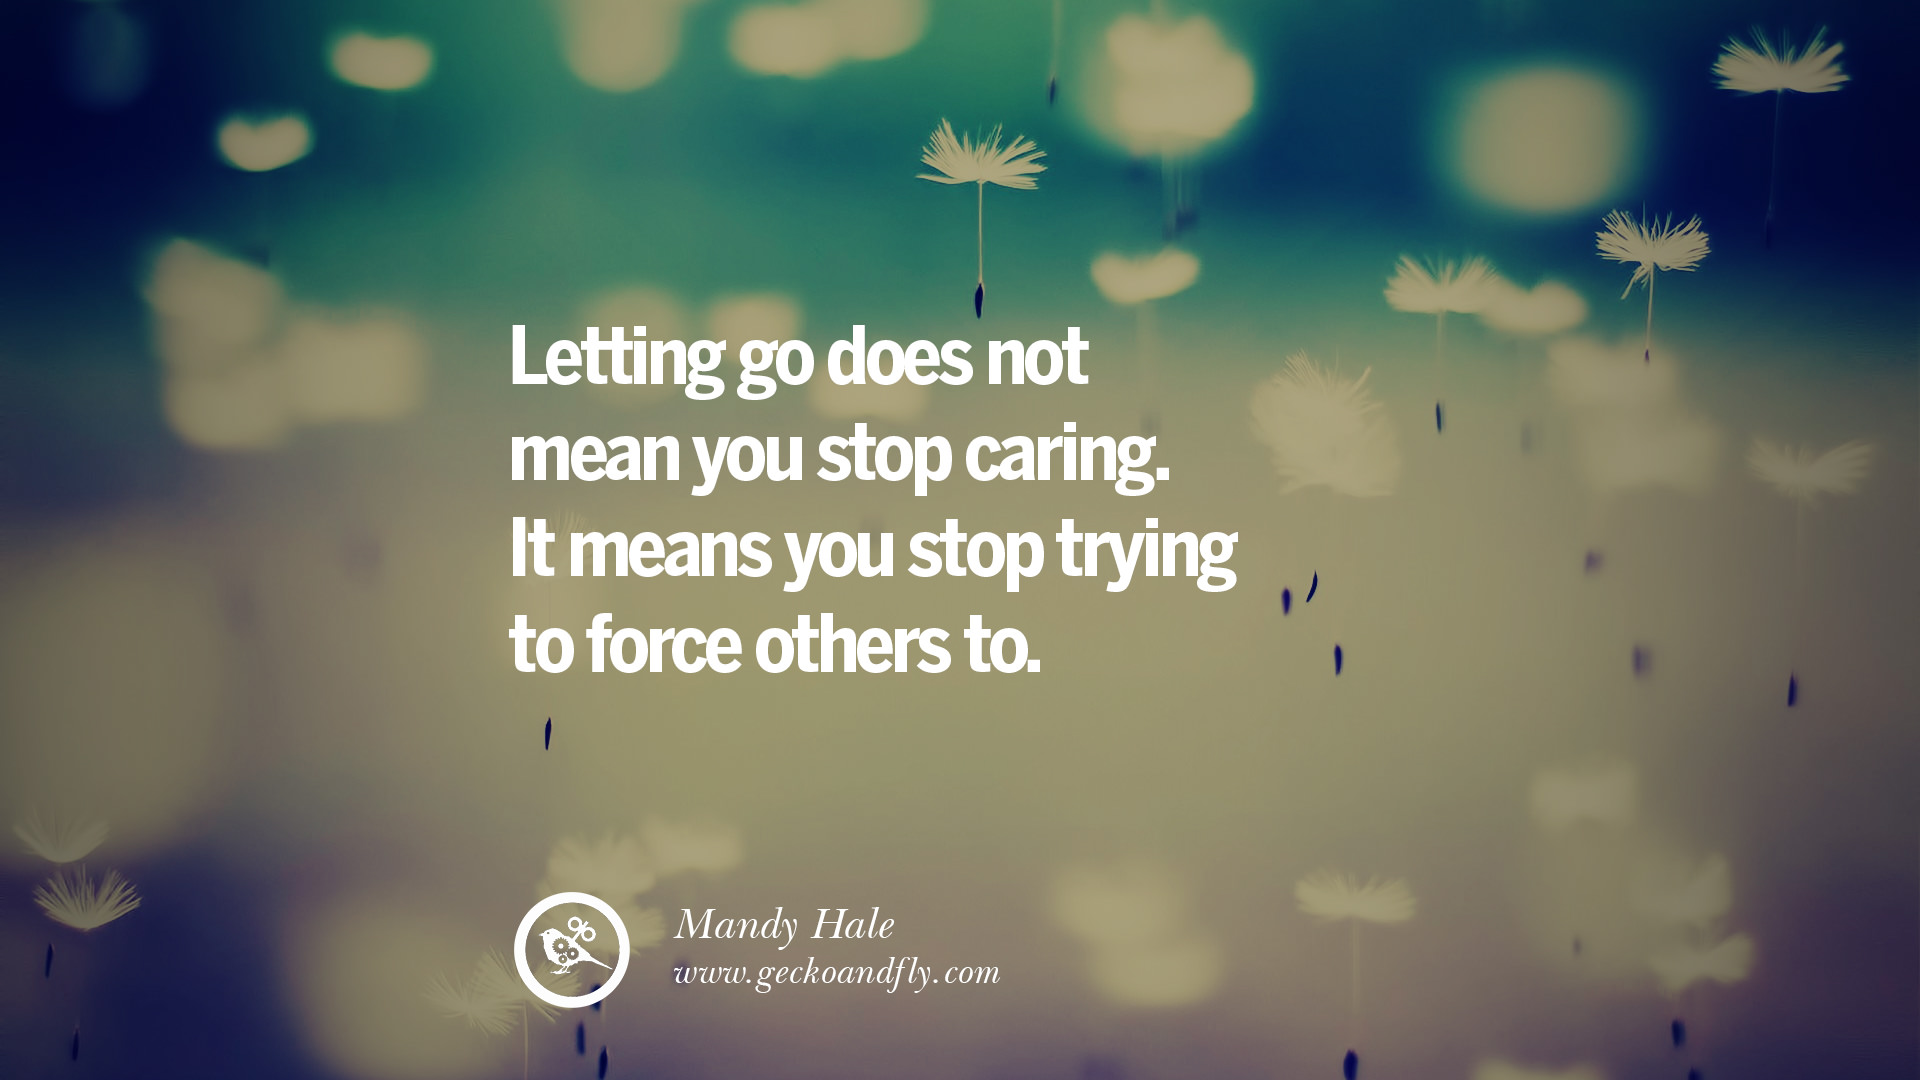 Quotes About Moving On Enchanting 50 Quotes About Moving On And Letting Go Of Relationship And Love .